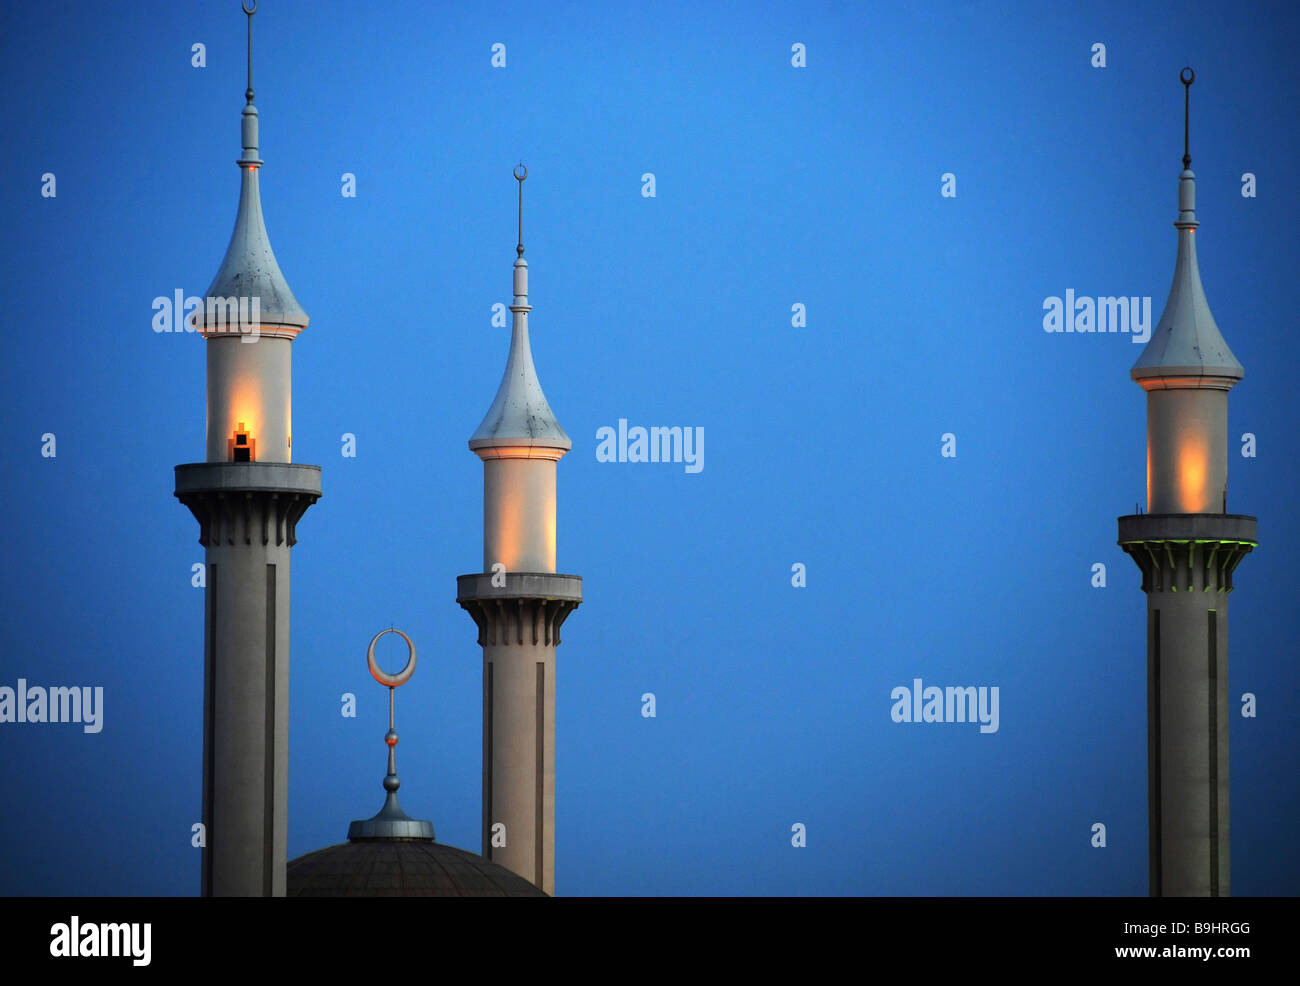 Minarets of the National Mosque in Abuja, Nigeria, Africa - Stock Image